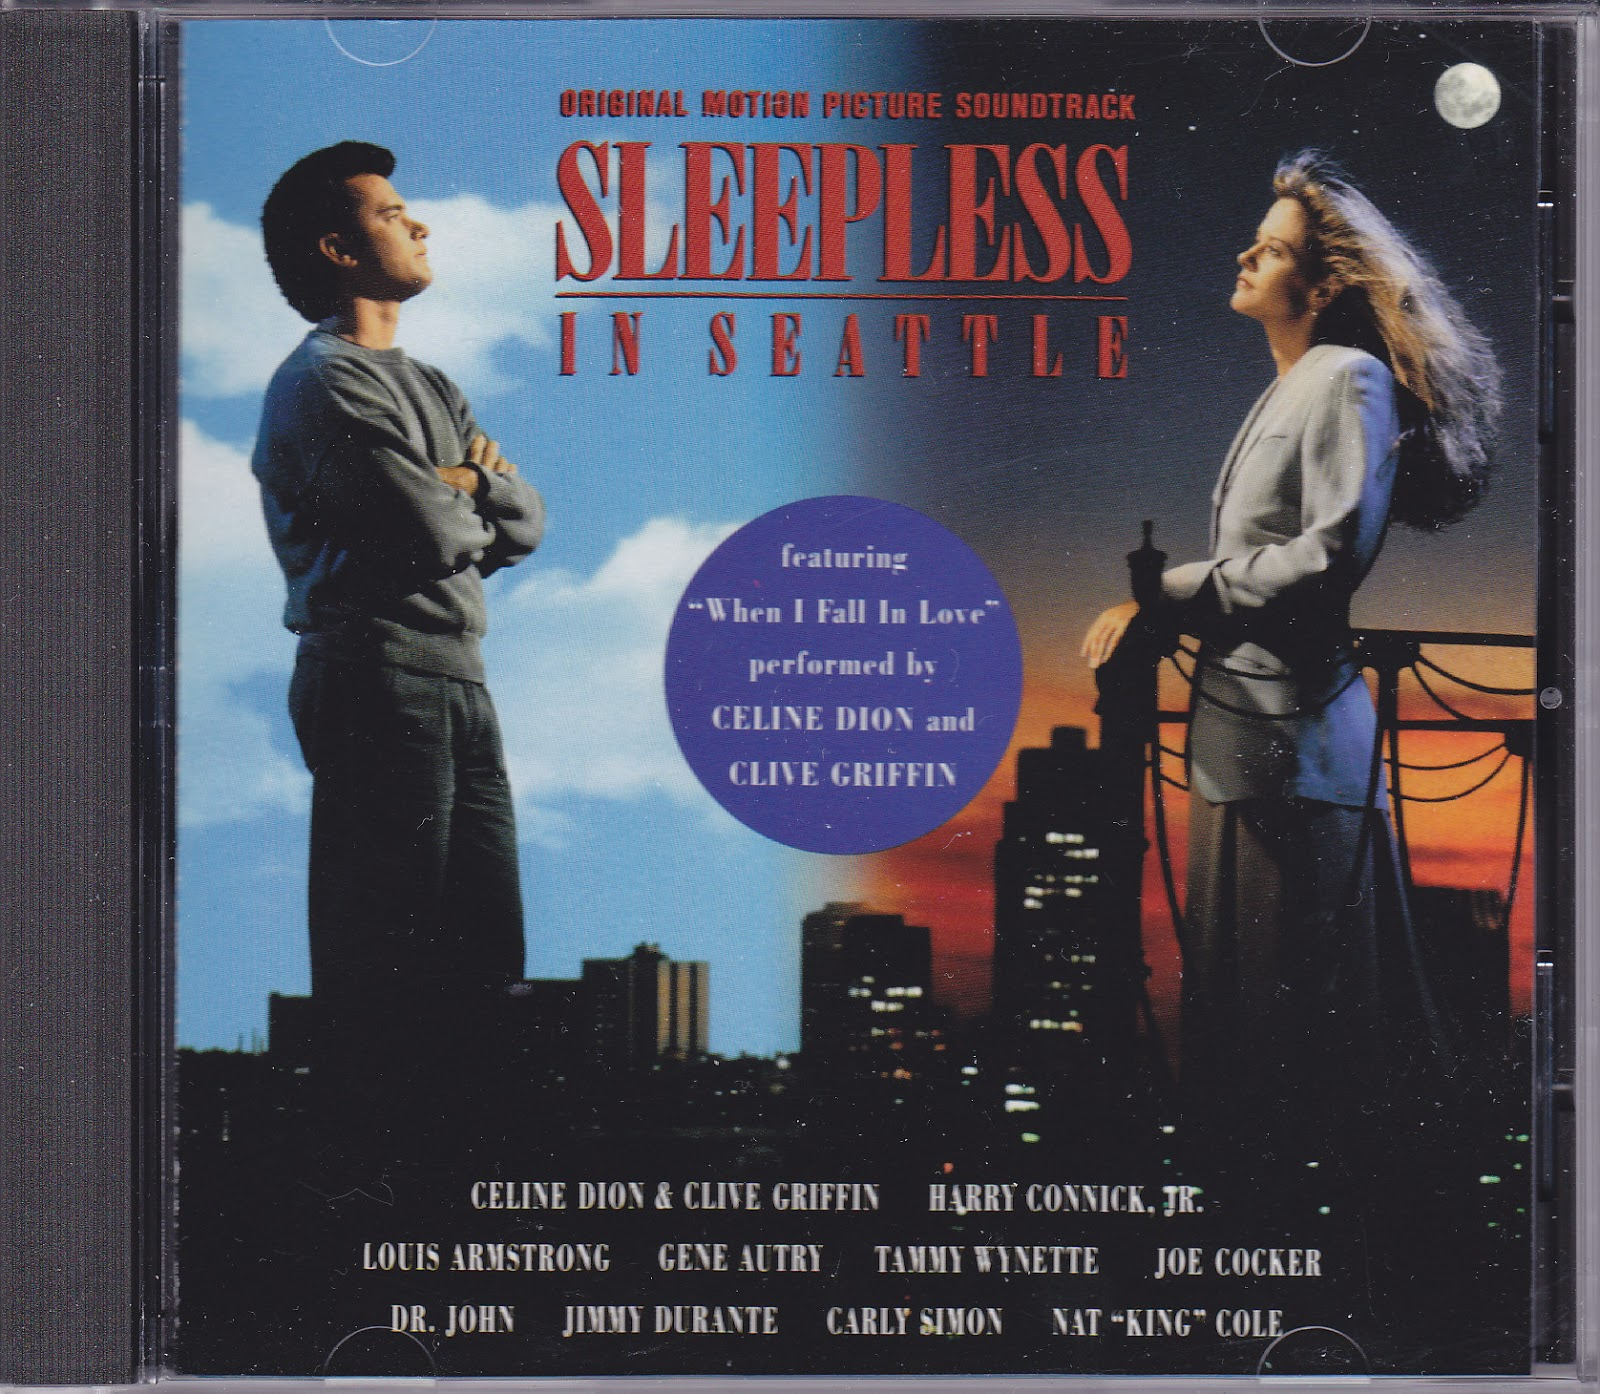 Sleepless in Seattle movie soundtrack | CD & LP Cover Art